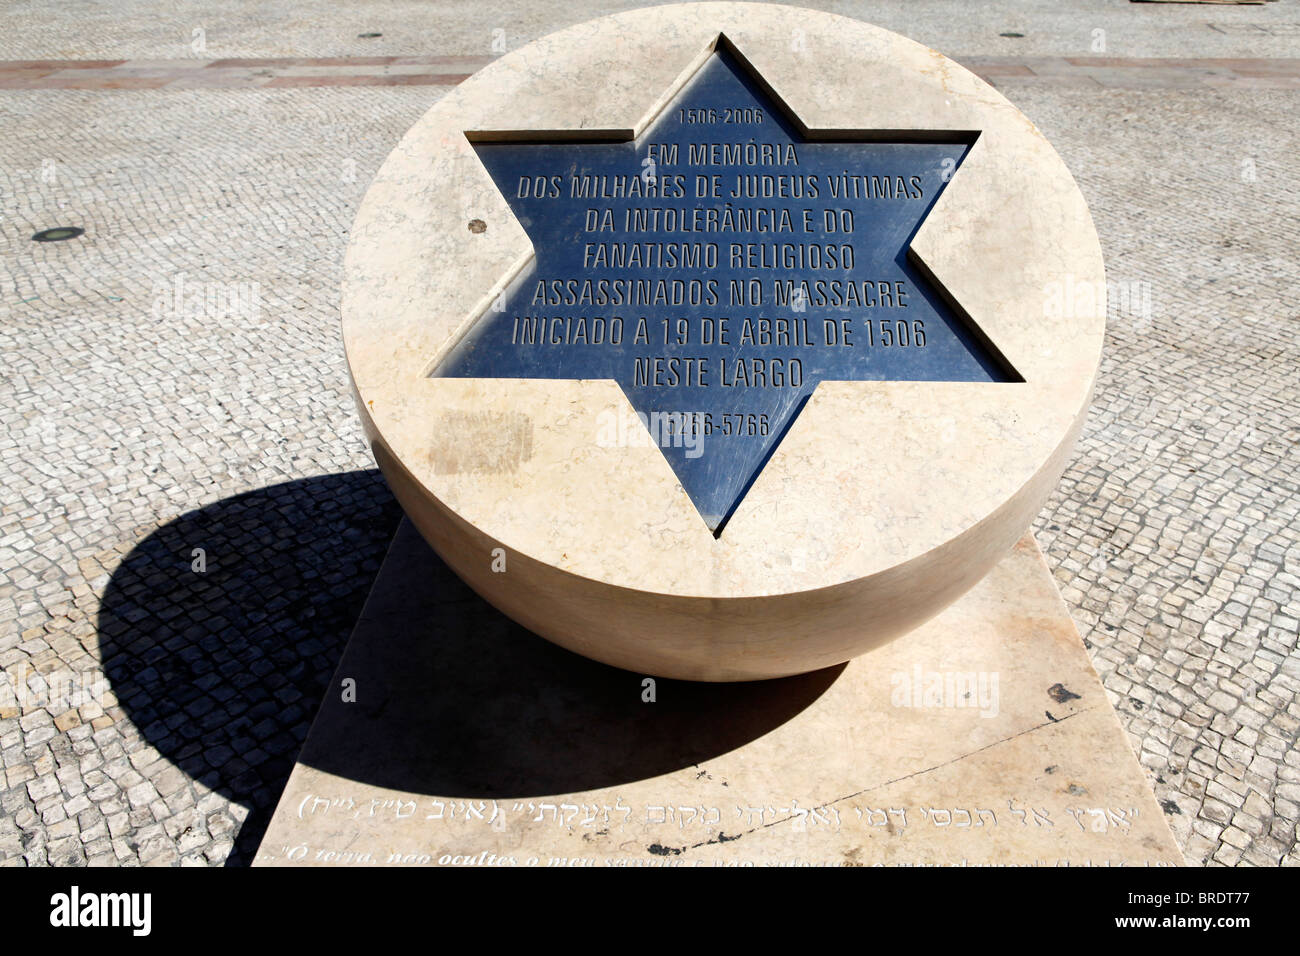 The memorial to the Jewish victims of intolerance and religious fanaticism which stands at the Largo do Sao Domingos - Stock Image